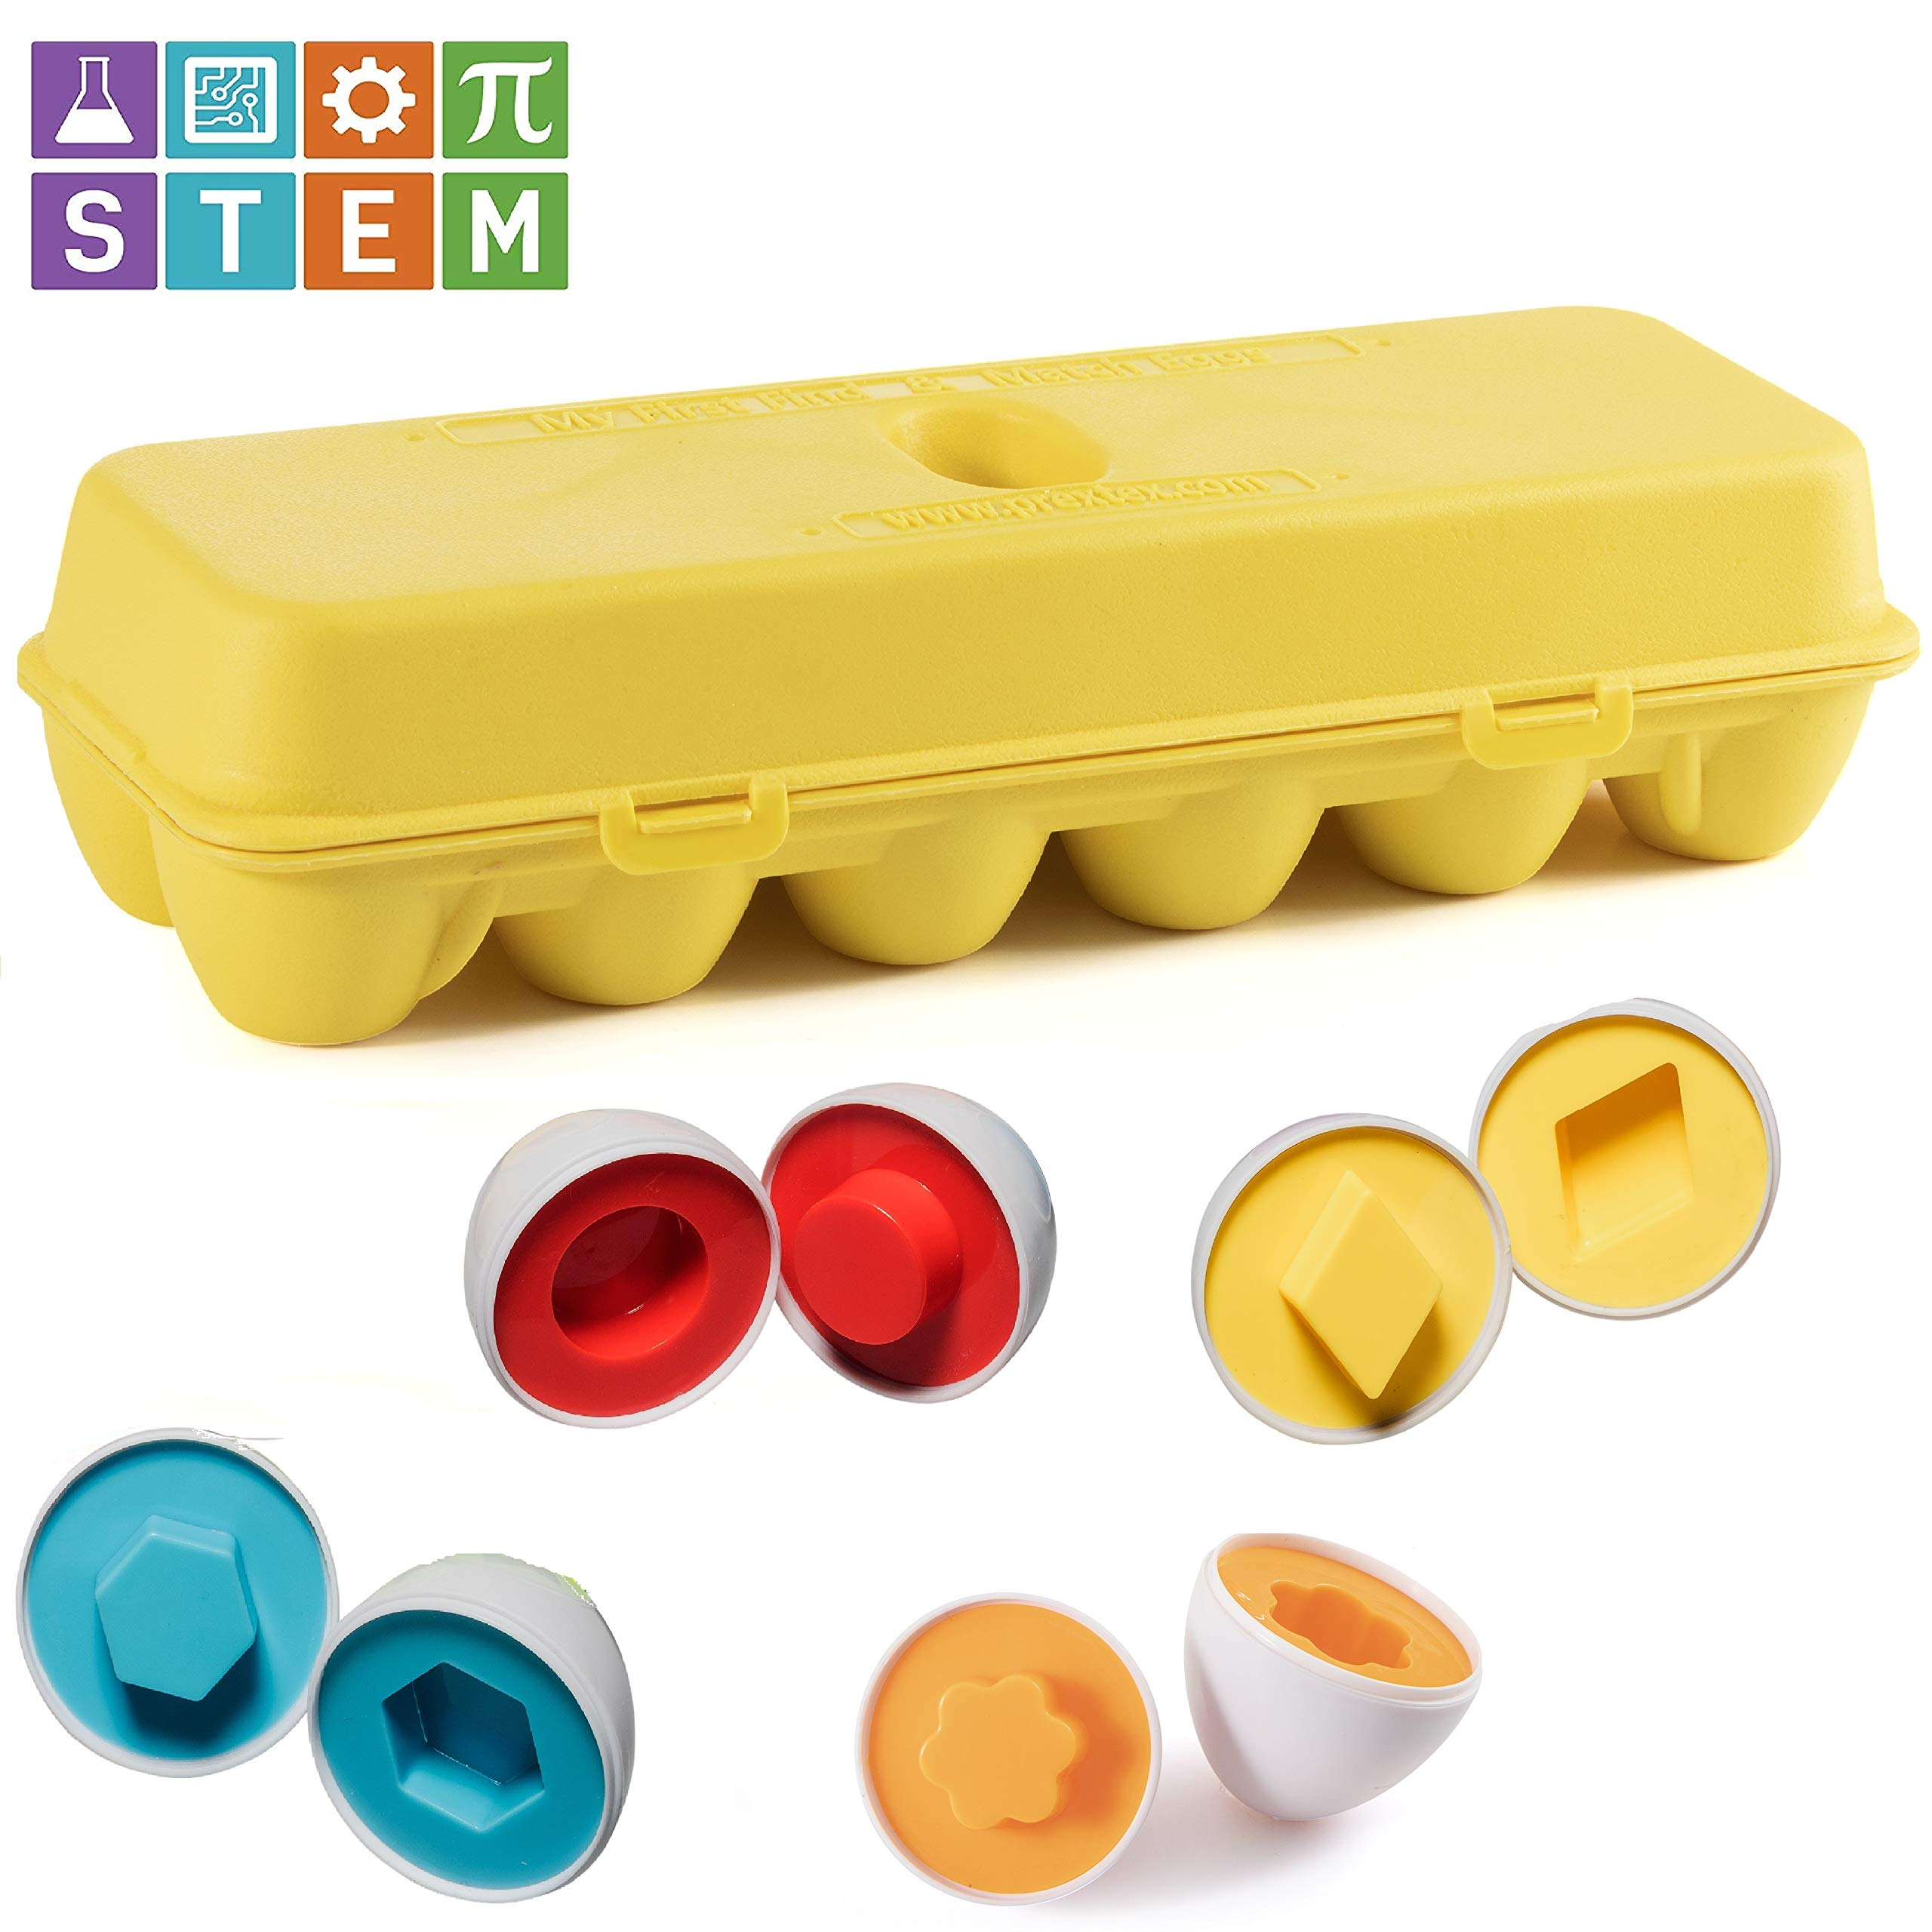 Prextex My First Find and Match Easter Matching Eggs with Yellow Eggs Holder - STEM Toys Educational Toy for Kids and Toddlers to Learn About Shapes and Colors Easter Gift by Prextex (Image #5)